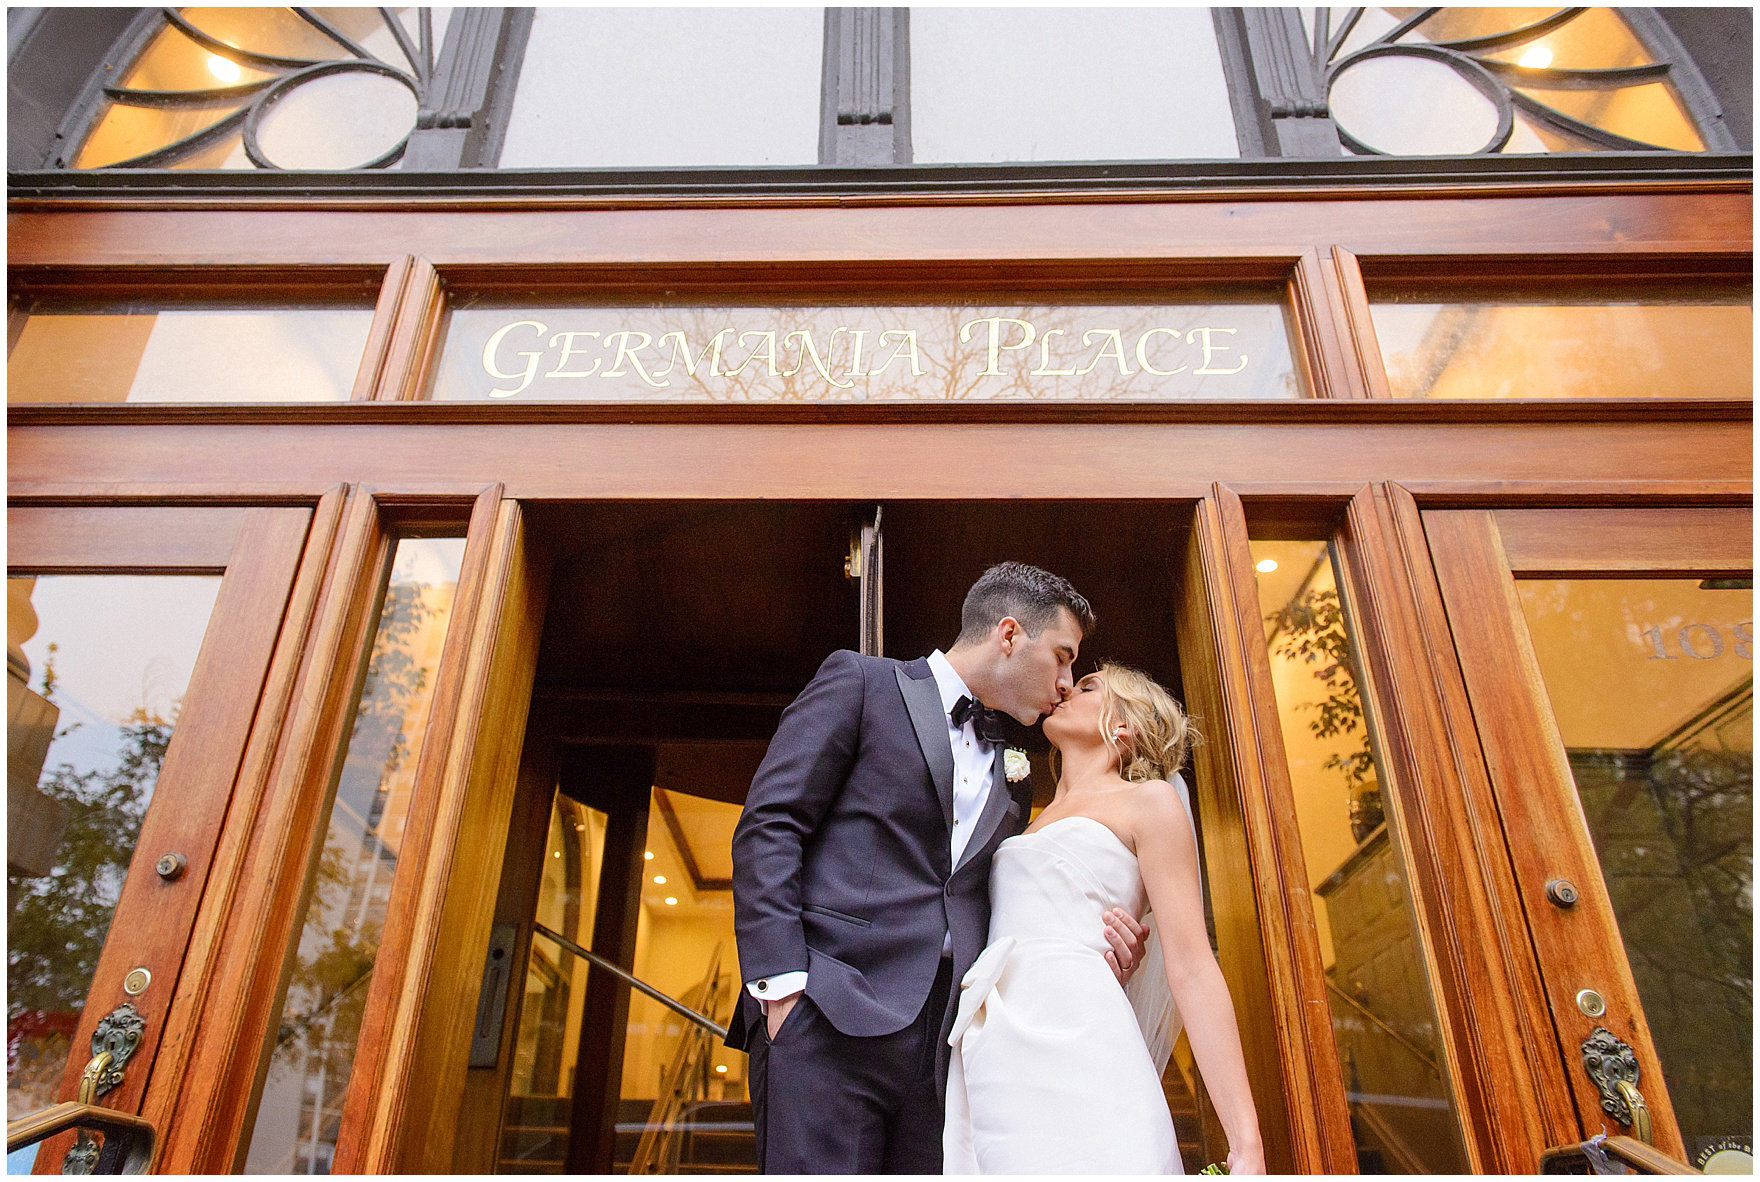 A bride and groom kiss at the entrance to their reception during a St. Clement Germania Place Chicago wedding.